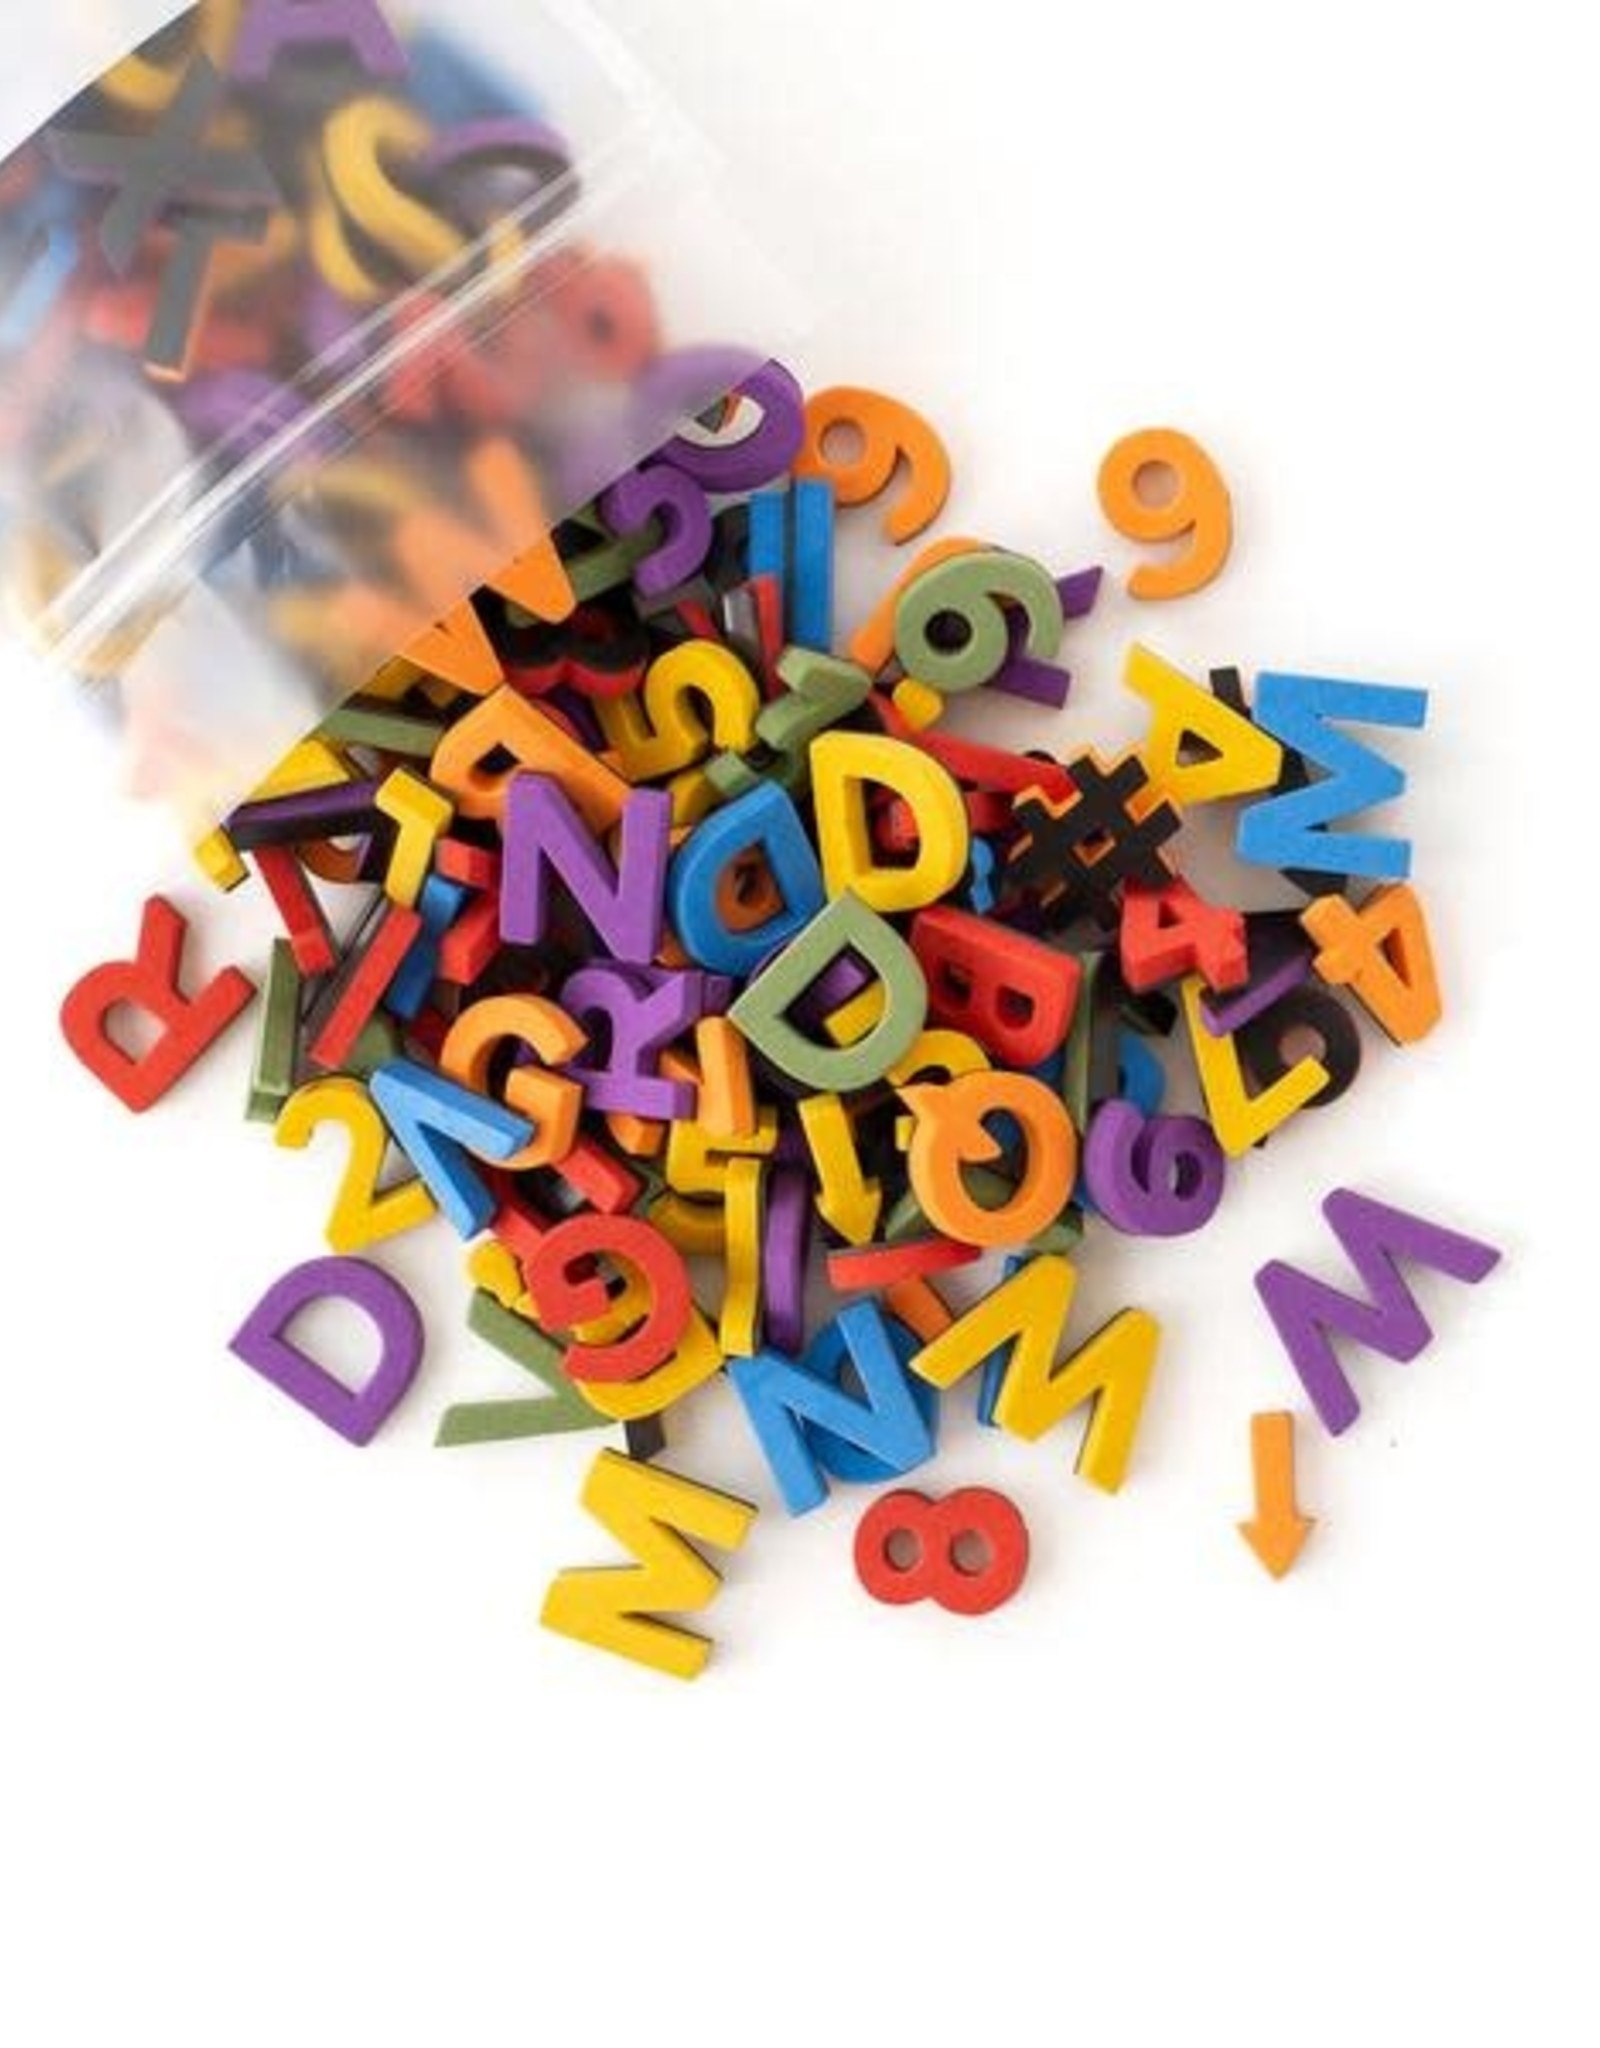 The Type Set Rainbow chic letters